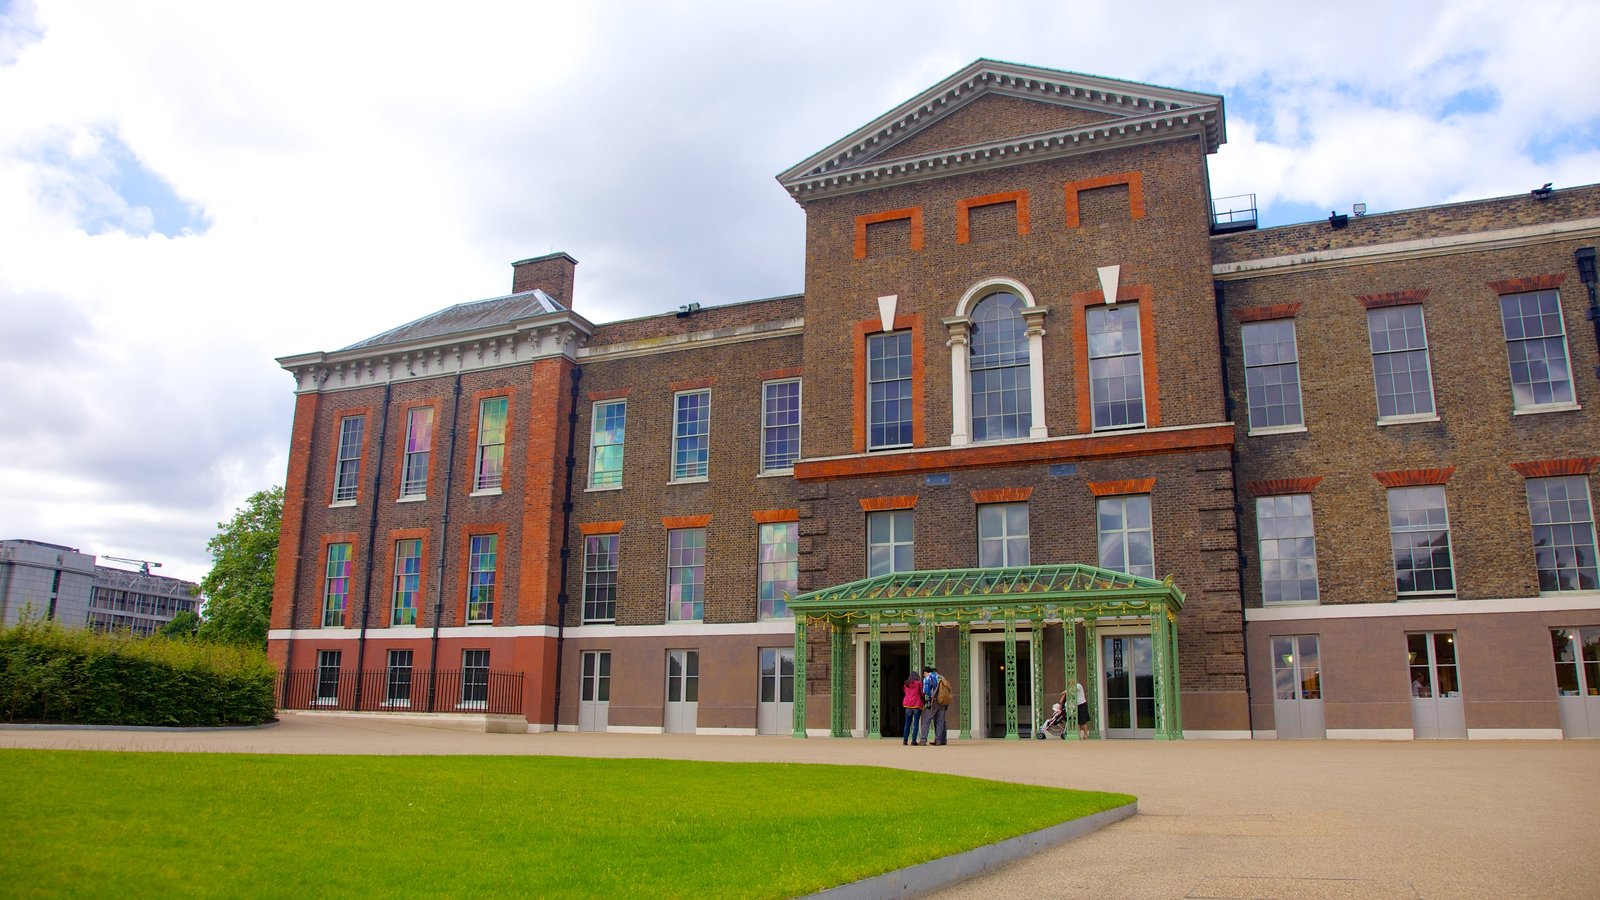 Kensington Palace Pictures View Photos Images Of